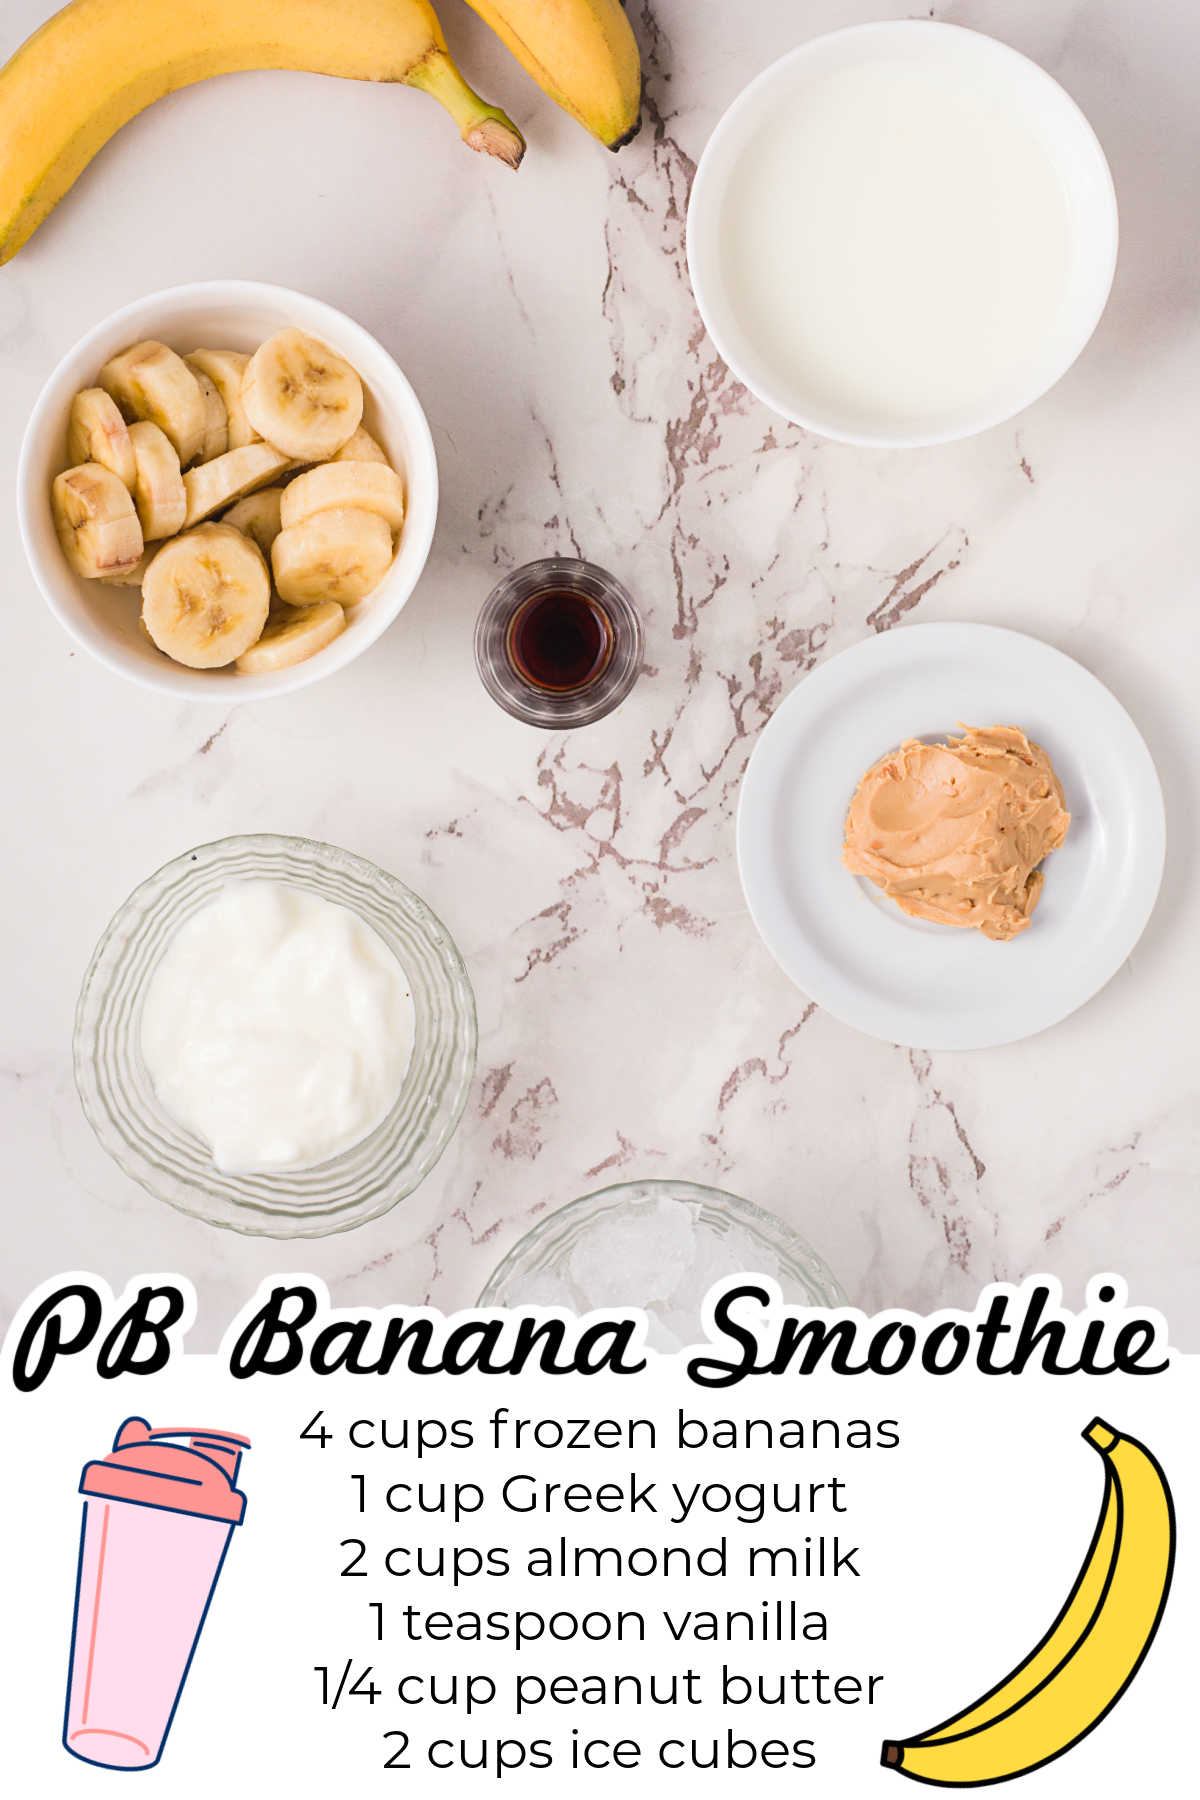 All of the ingredients needed to make this Peanut Butter Banana Smoothie recipe.